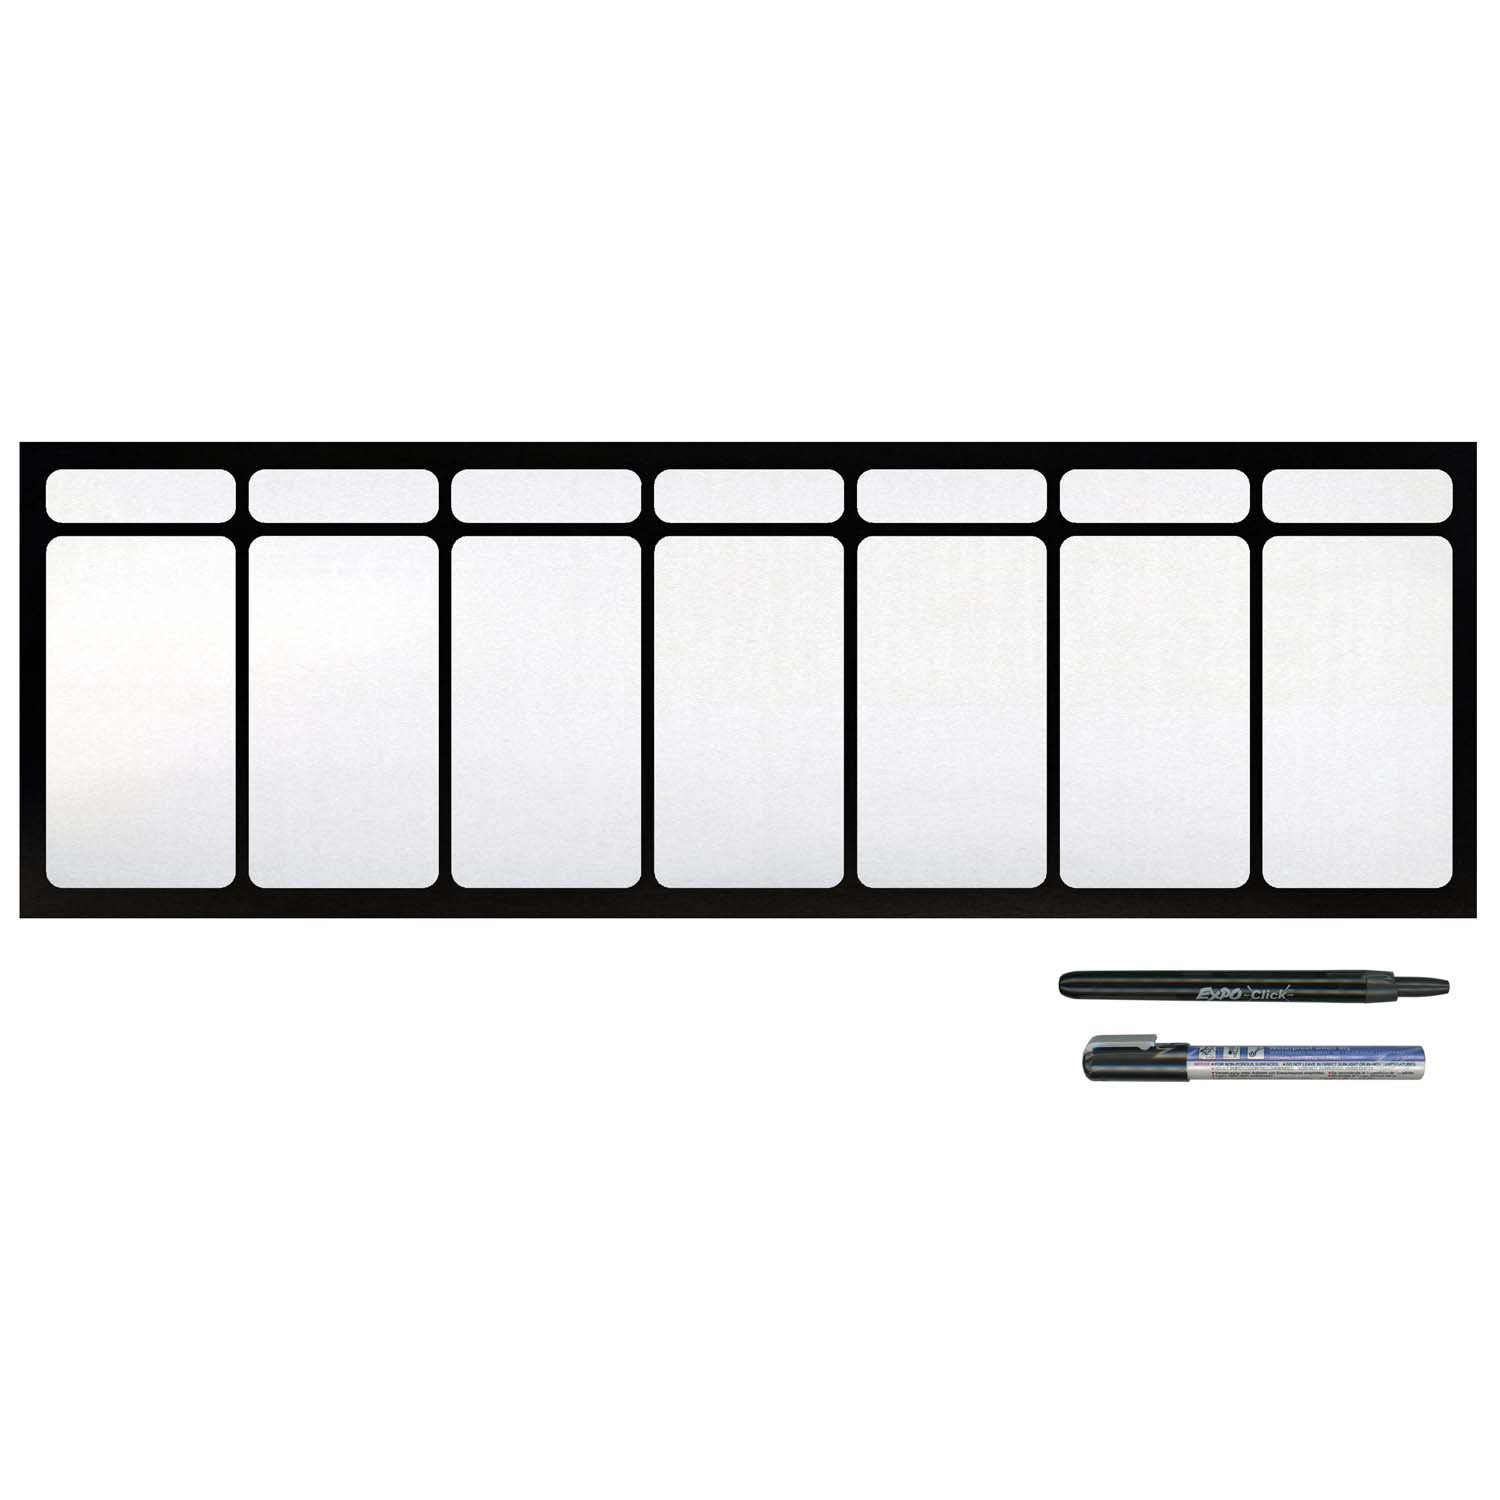 Cohas Magnetic Backed Large 7 Day Calendar includes Black Markers, Whiteboard, 1 Week